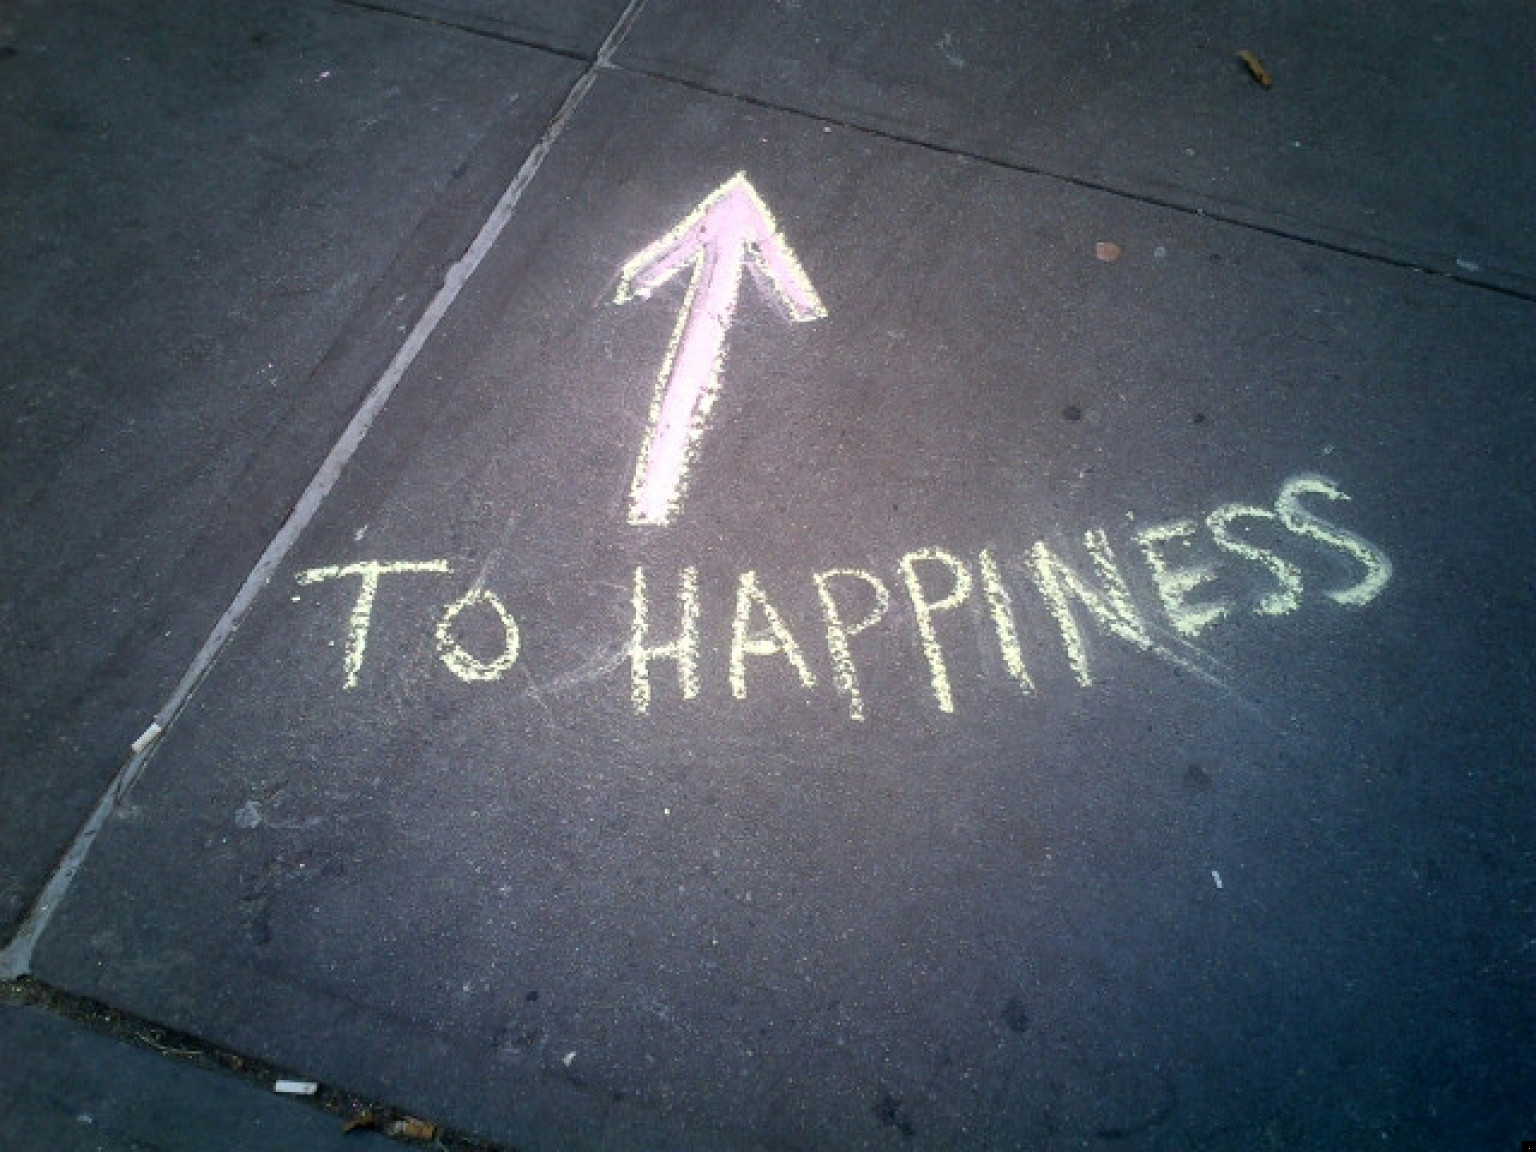 Happiness Photography Tumblr Happiness Images In Si...